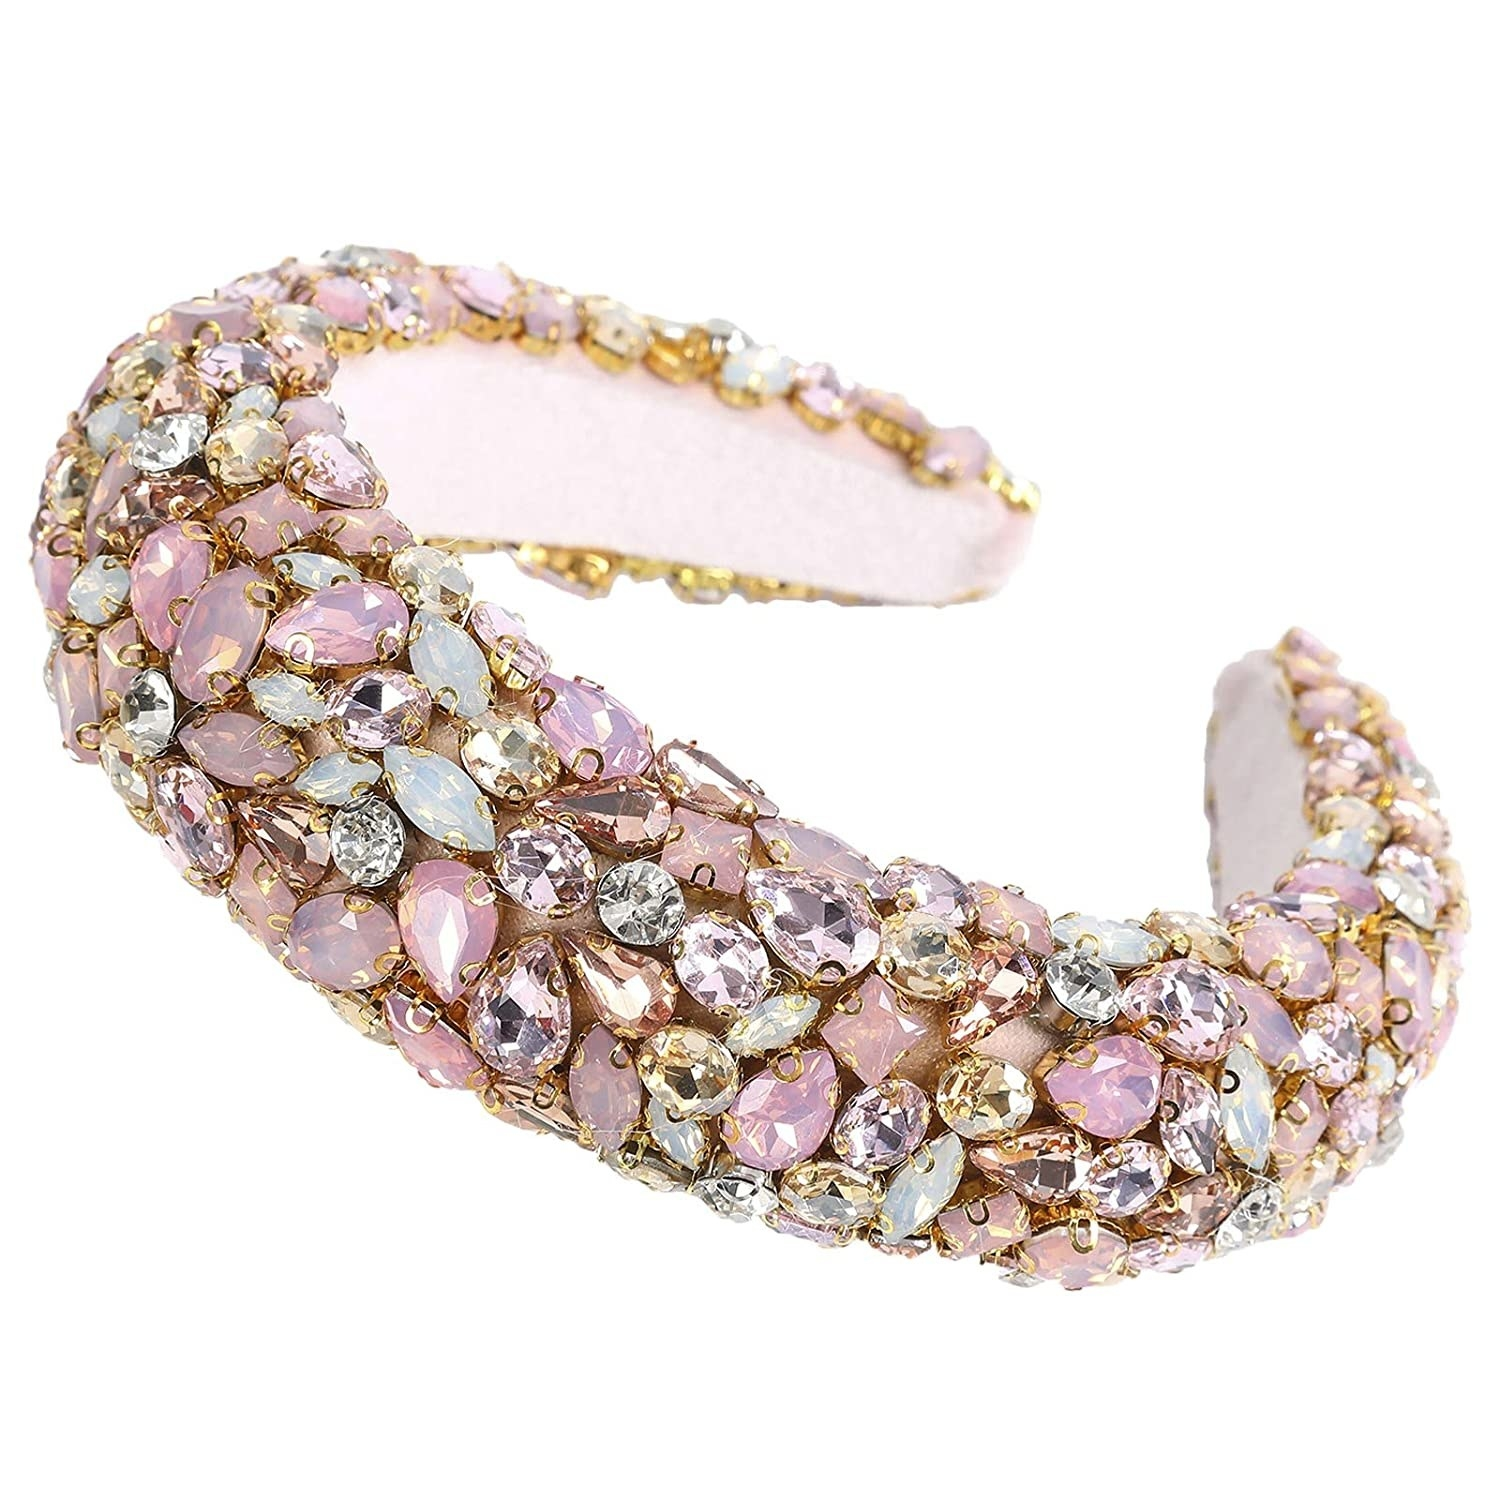 The pink bedazzled headband